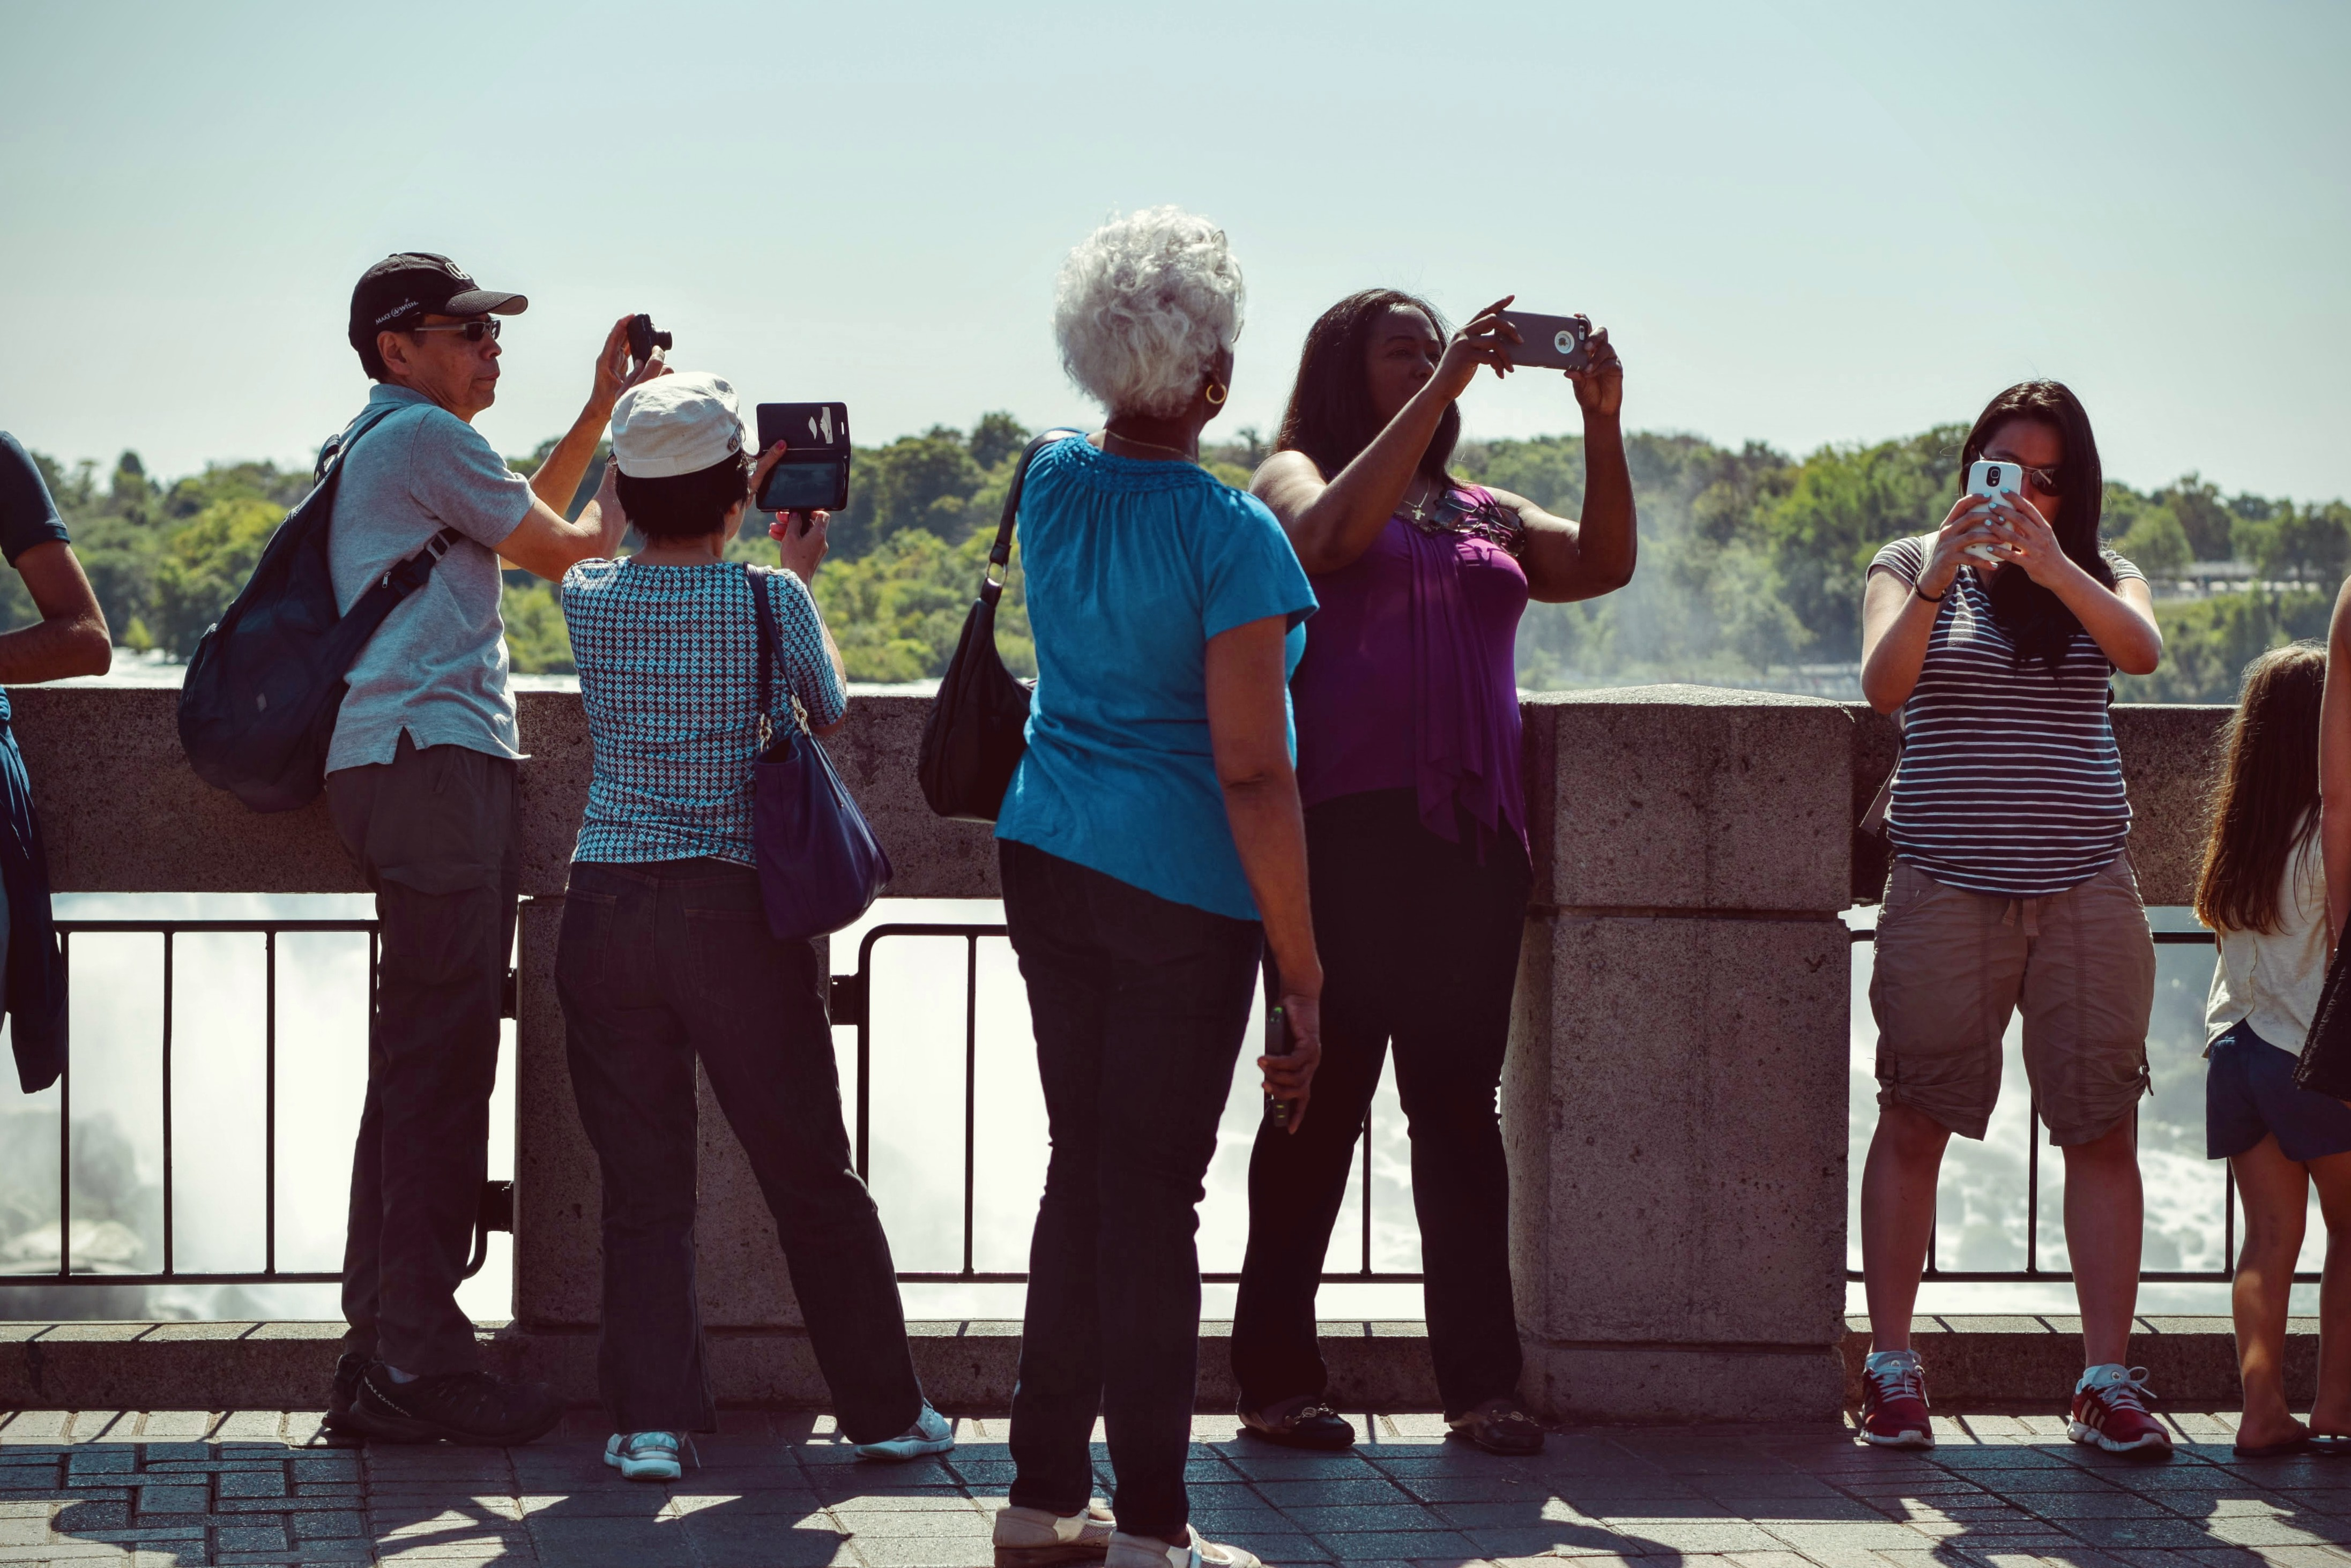 People Taking Pictures